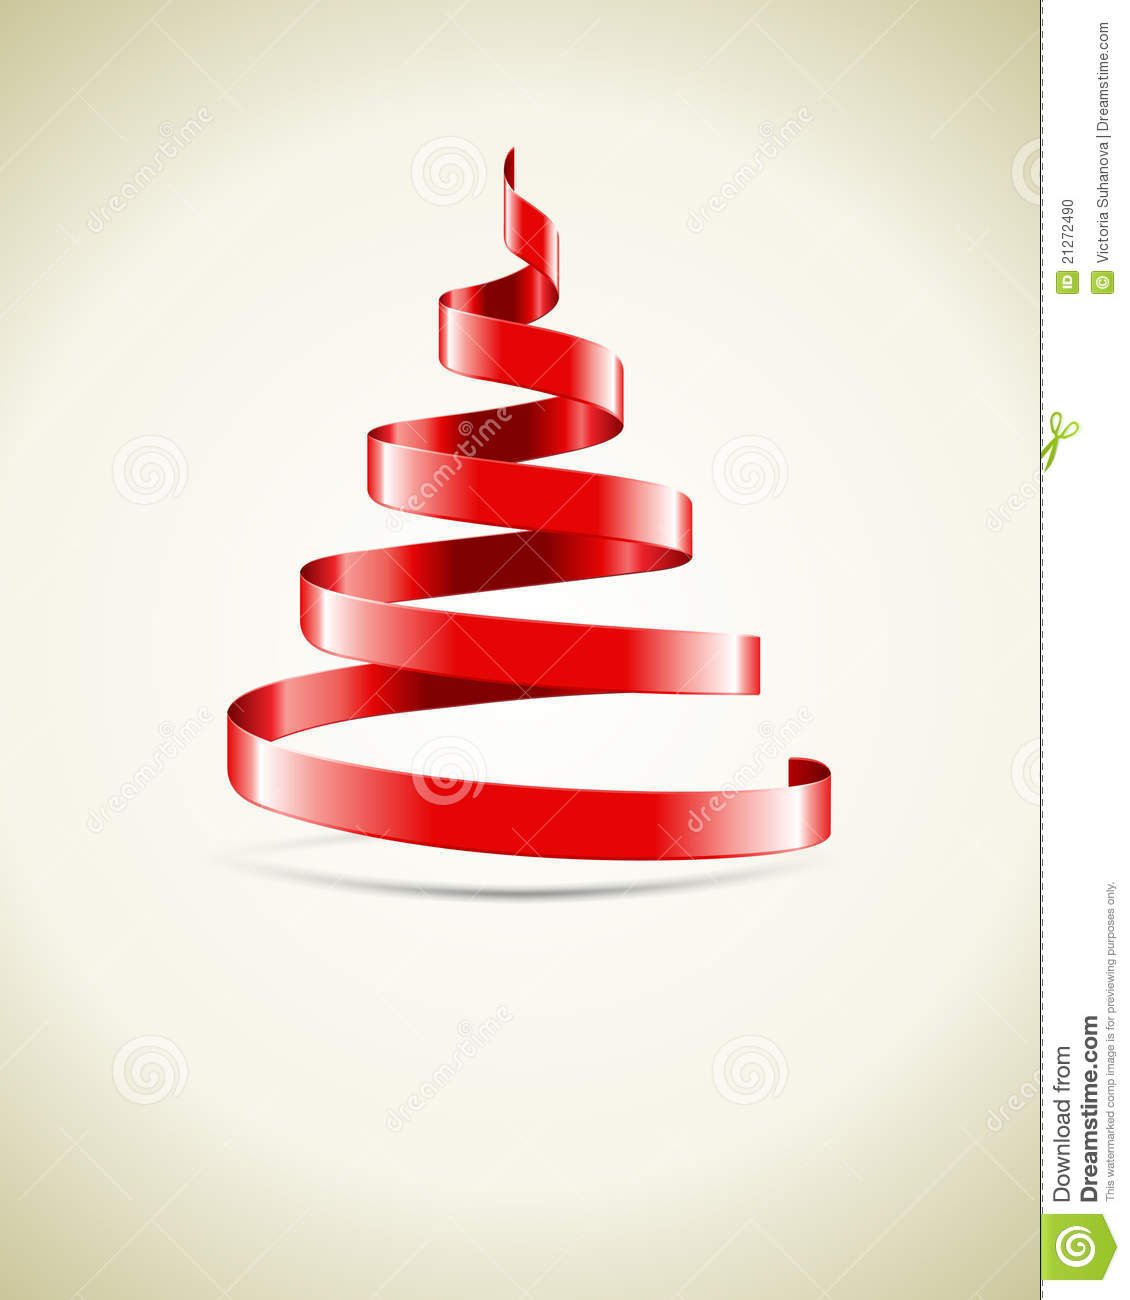 Red Ribbon Christmas Tree Stock Illustration. Illustration